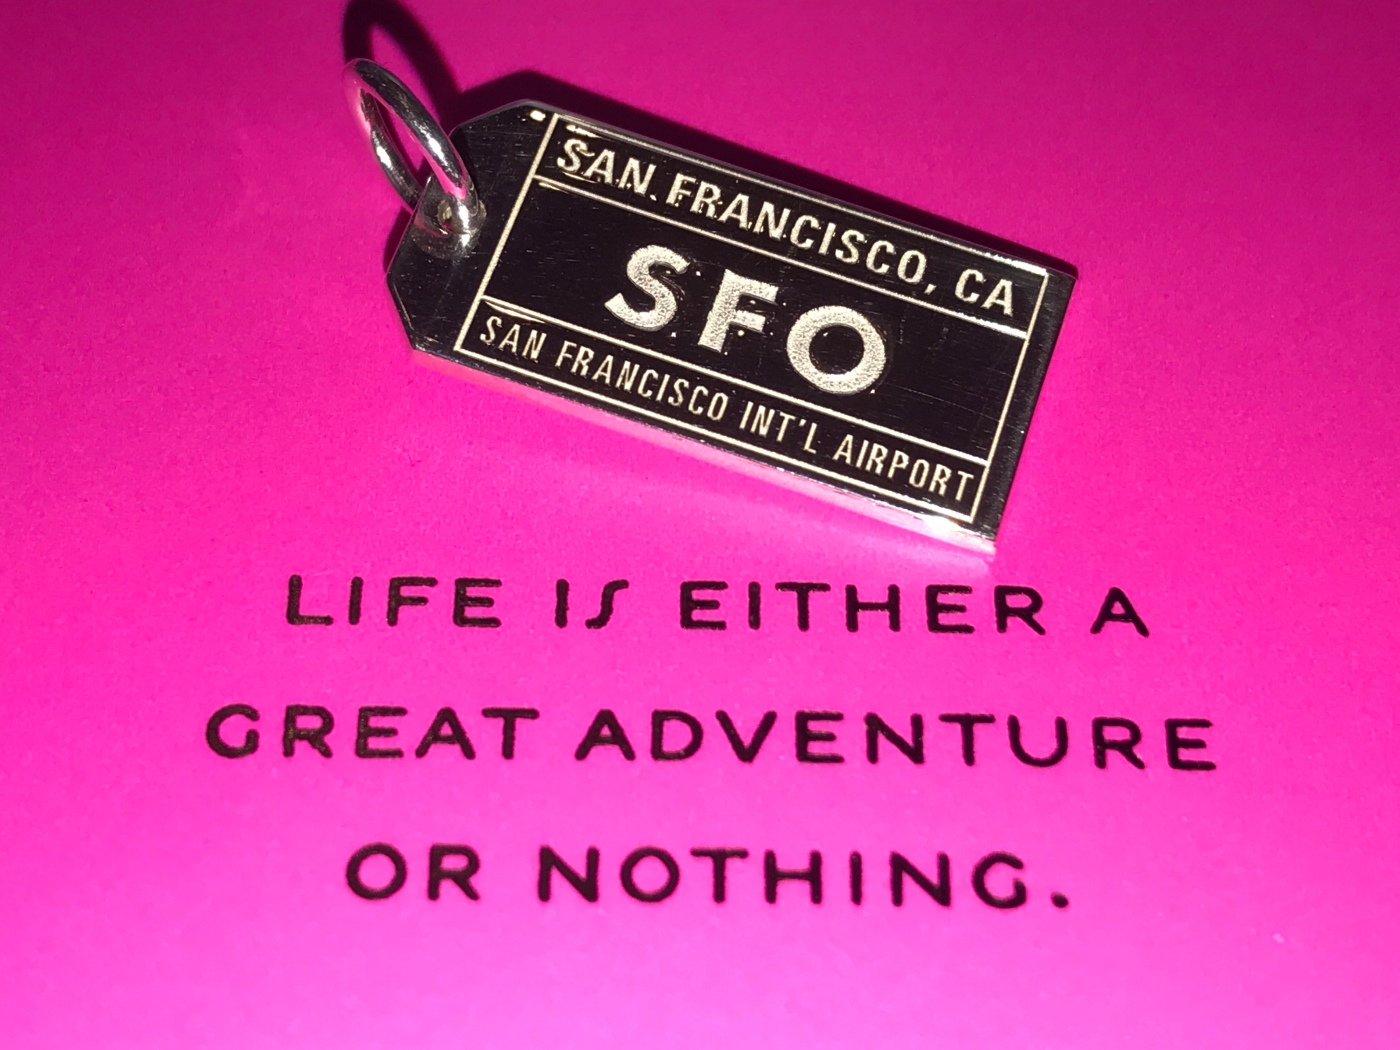 Silver SFO Charm From New York's Jet Set Candy - Life is Either a Great Adventure or Nothing Quote